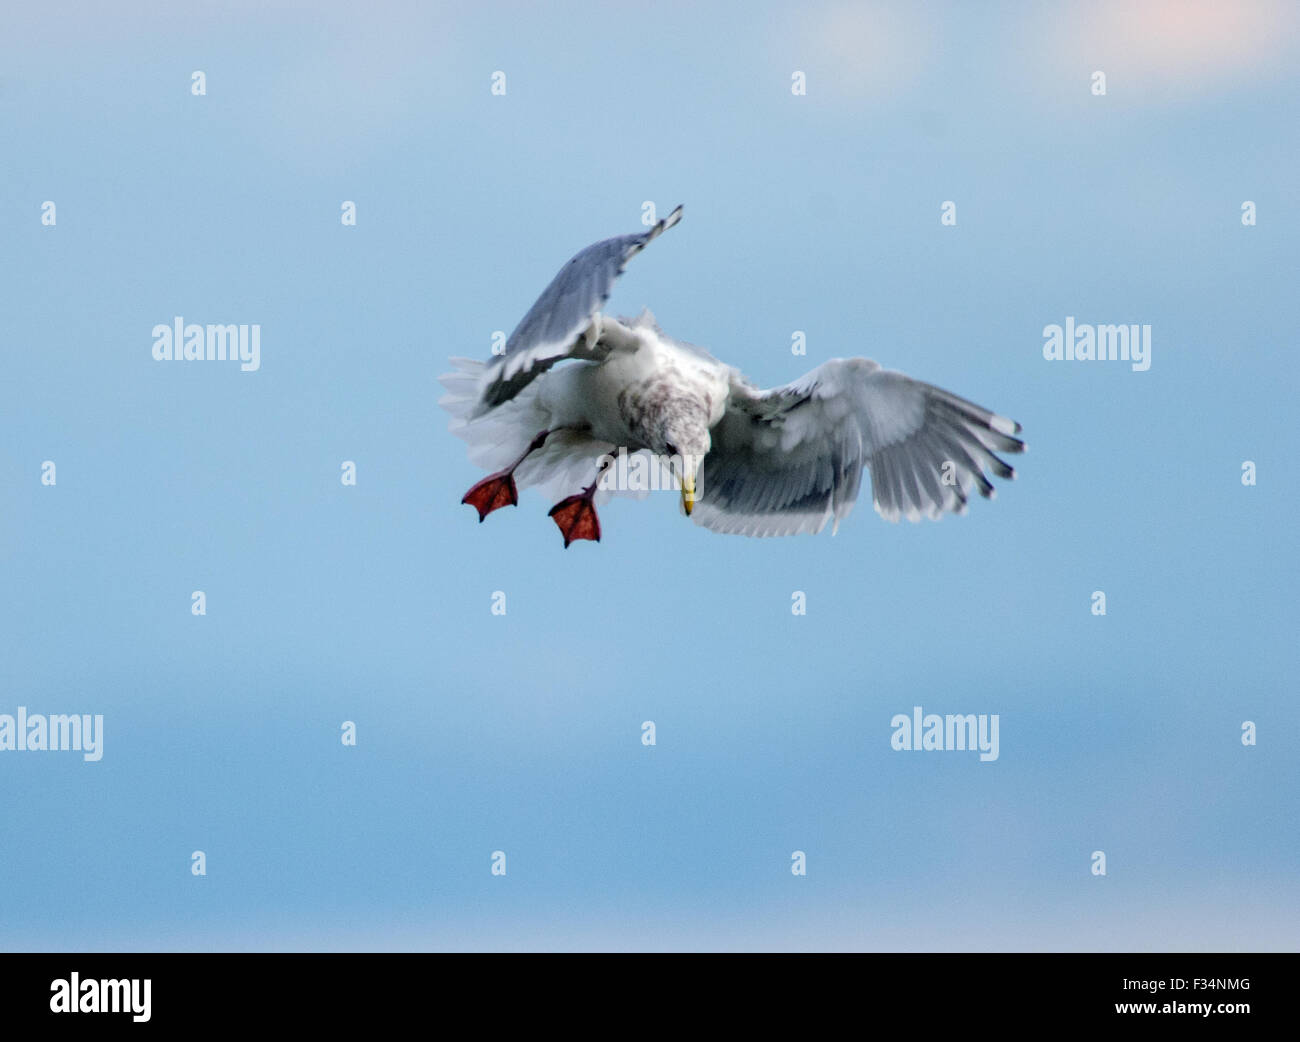 Glaucous-winged Gull (Larus glaucescens) coming in for landing, Nanaimo, British Columbia, Canada - Stock Image